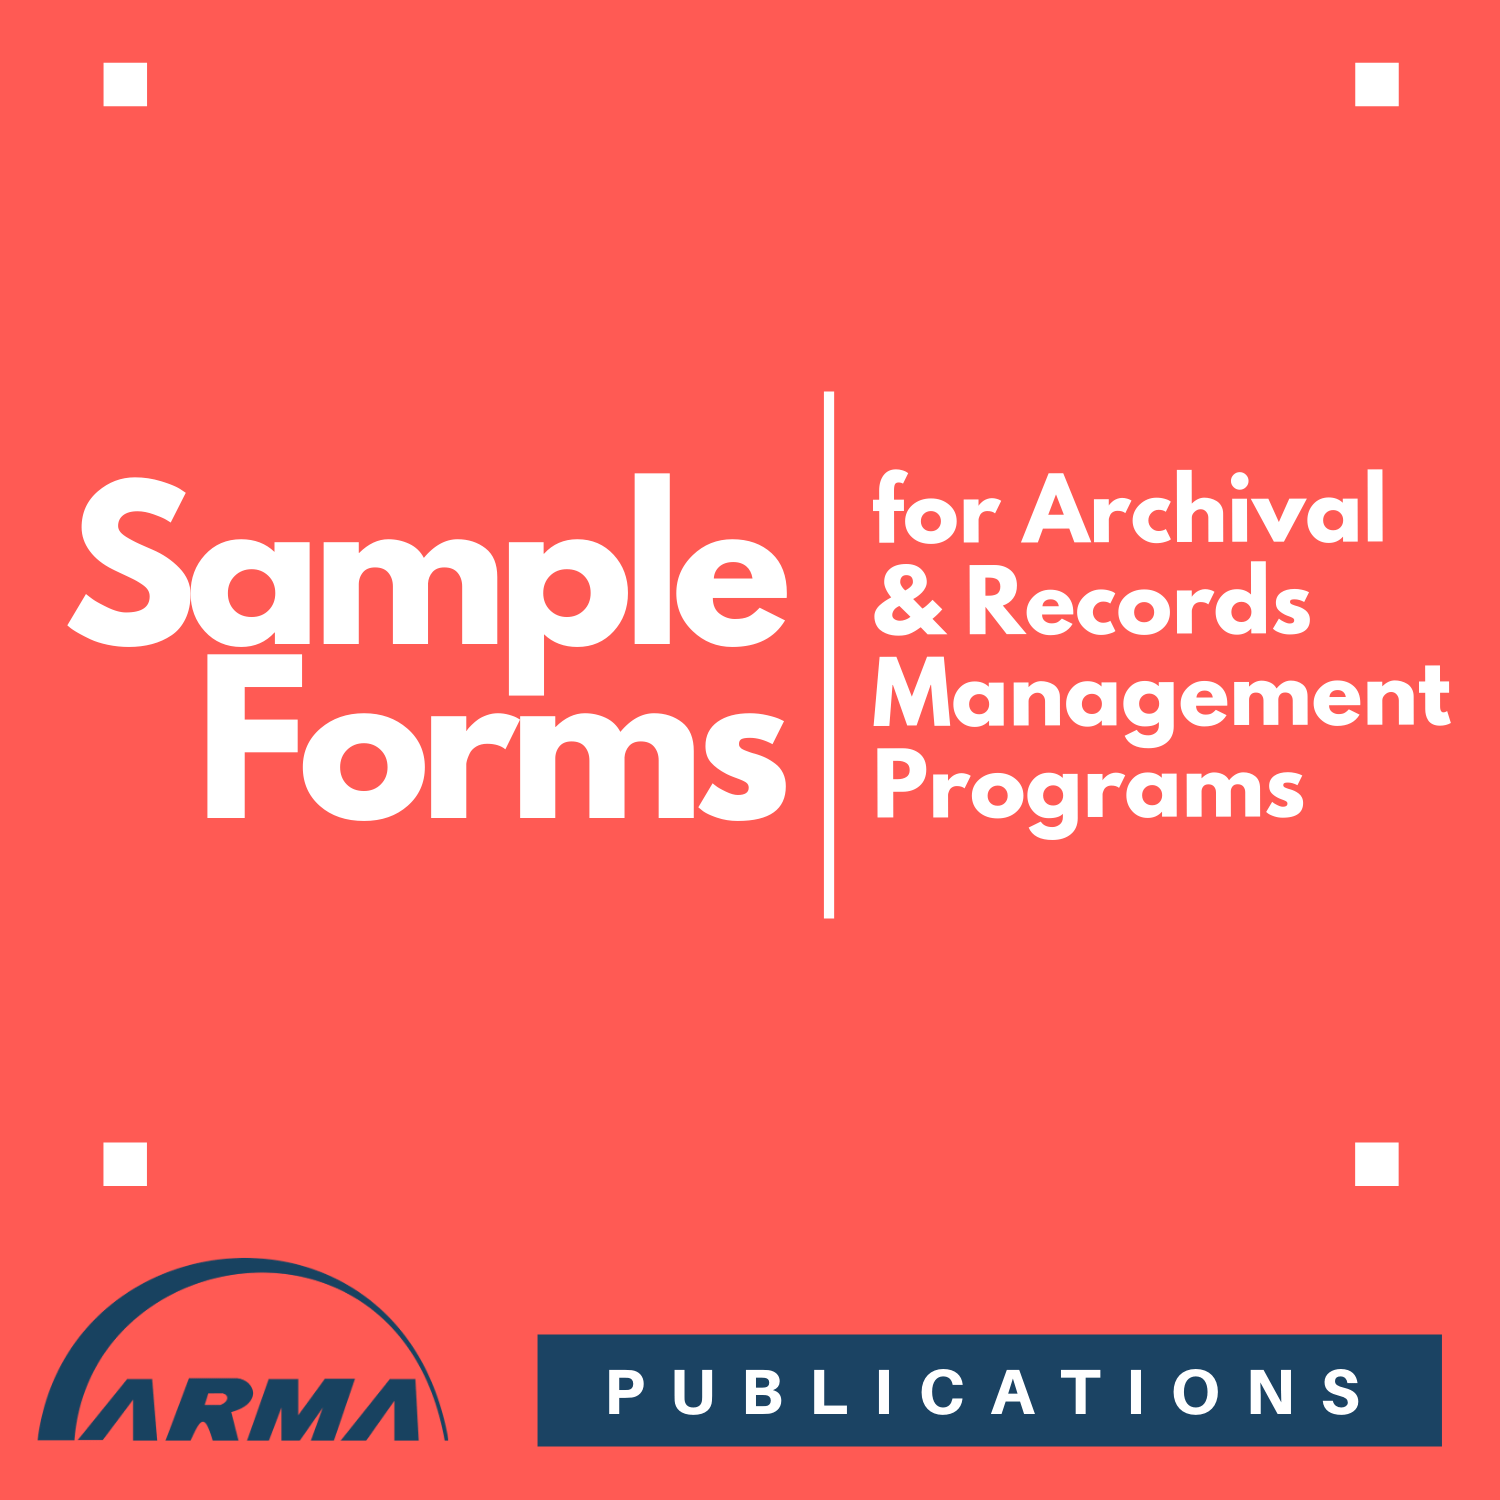 Sample Forms for Archival and Records Management Programs